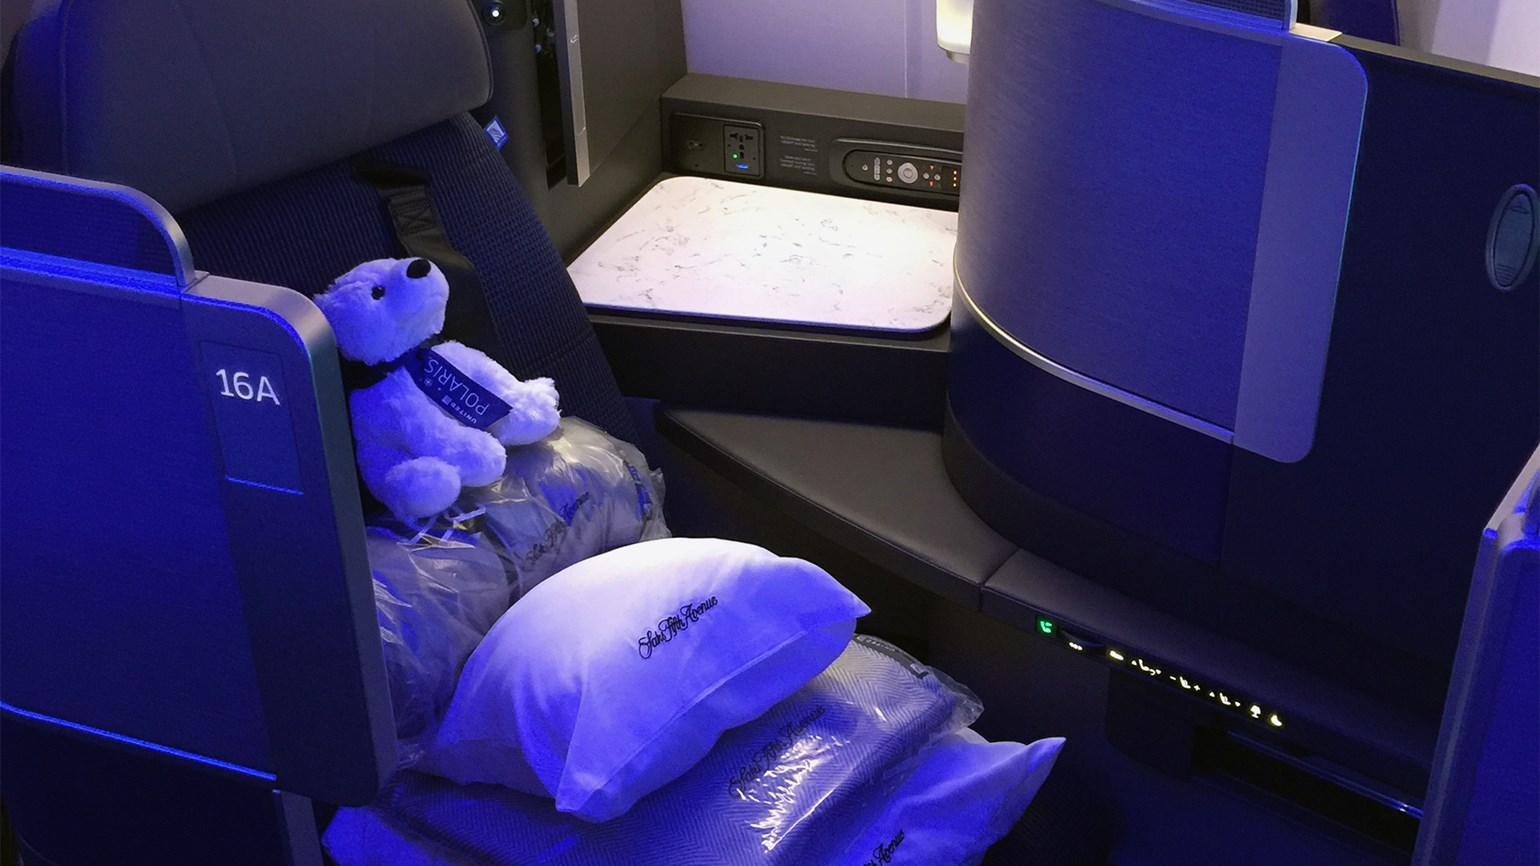 United sweats the details in new business class